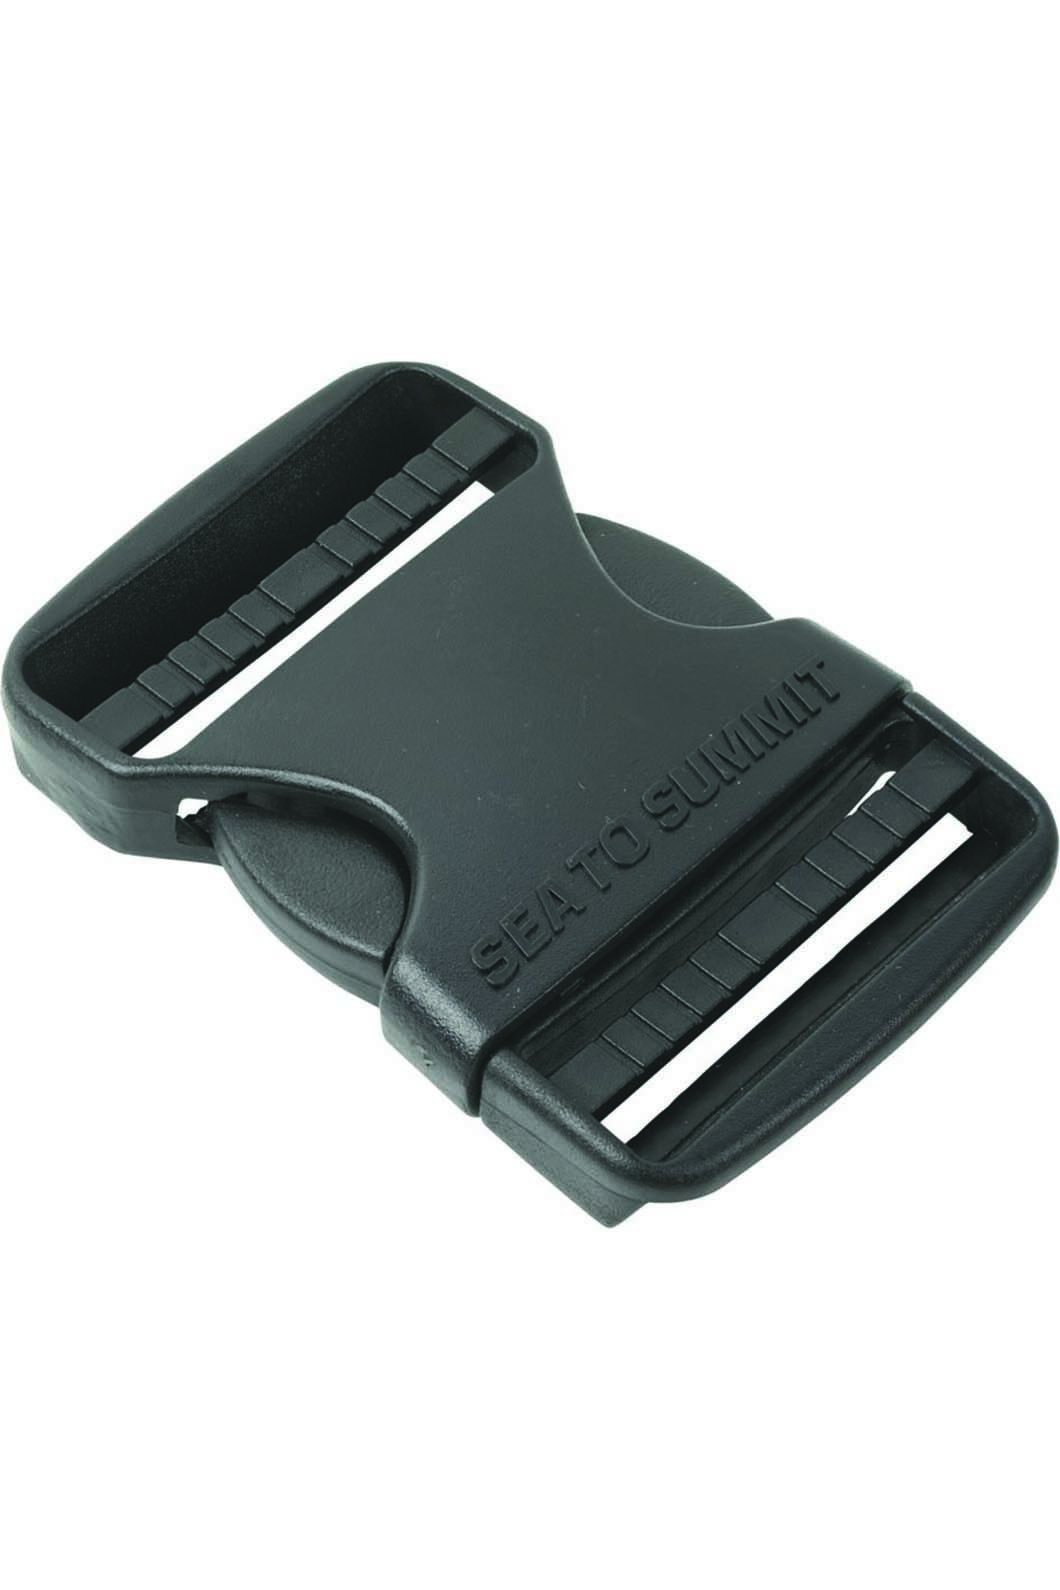 Sea to Summit Field Repair Buckle 50mm Side Release, None, hi-res